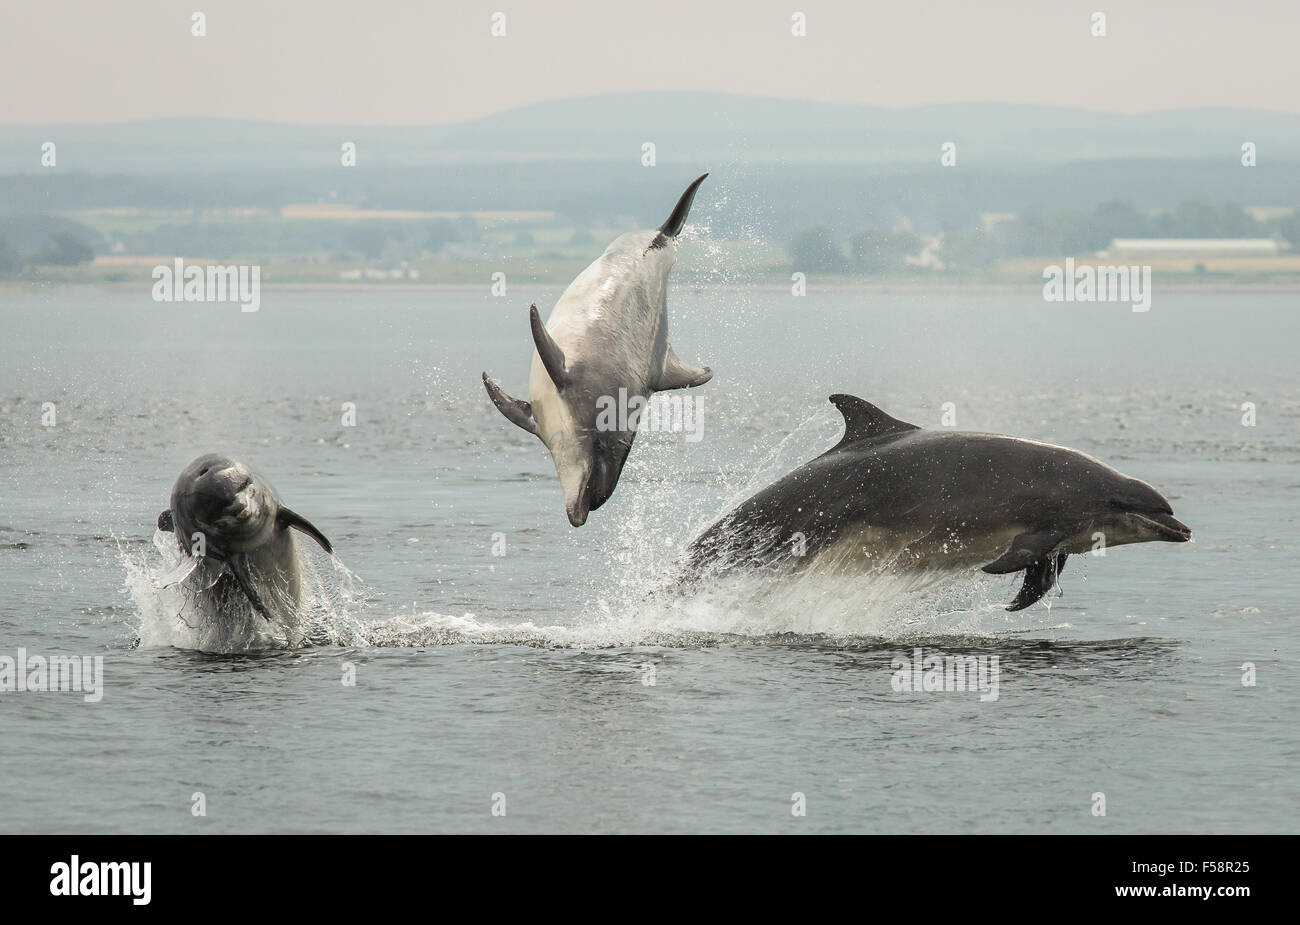 Three dolphins breaching simultaneously in the Moray Firth, Scotland. - Stock Image